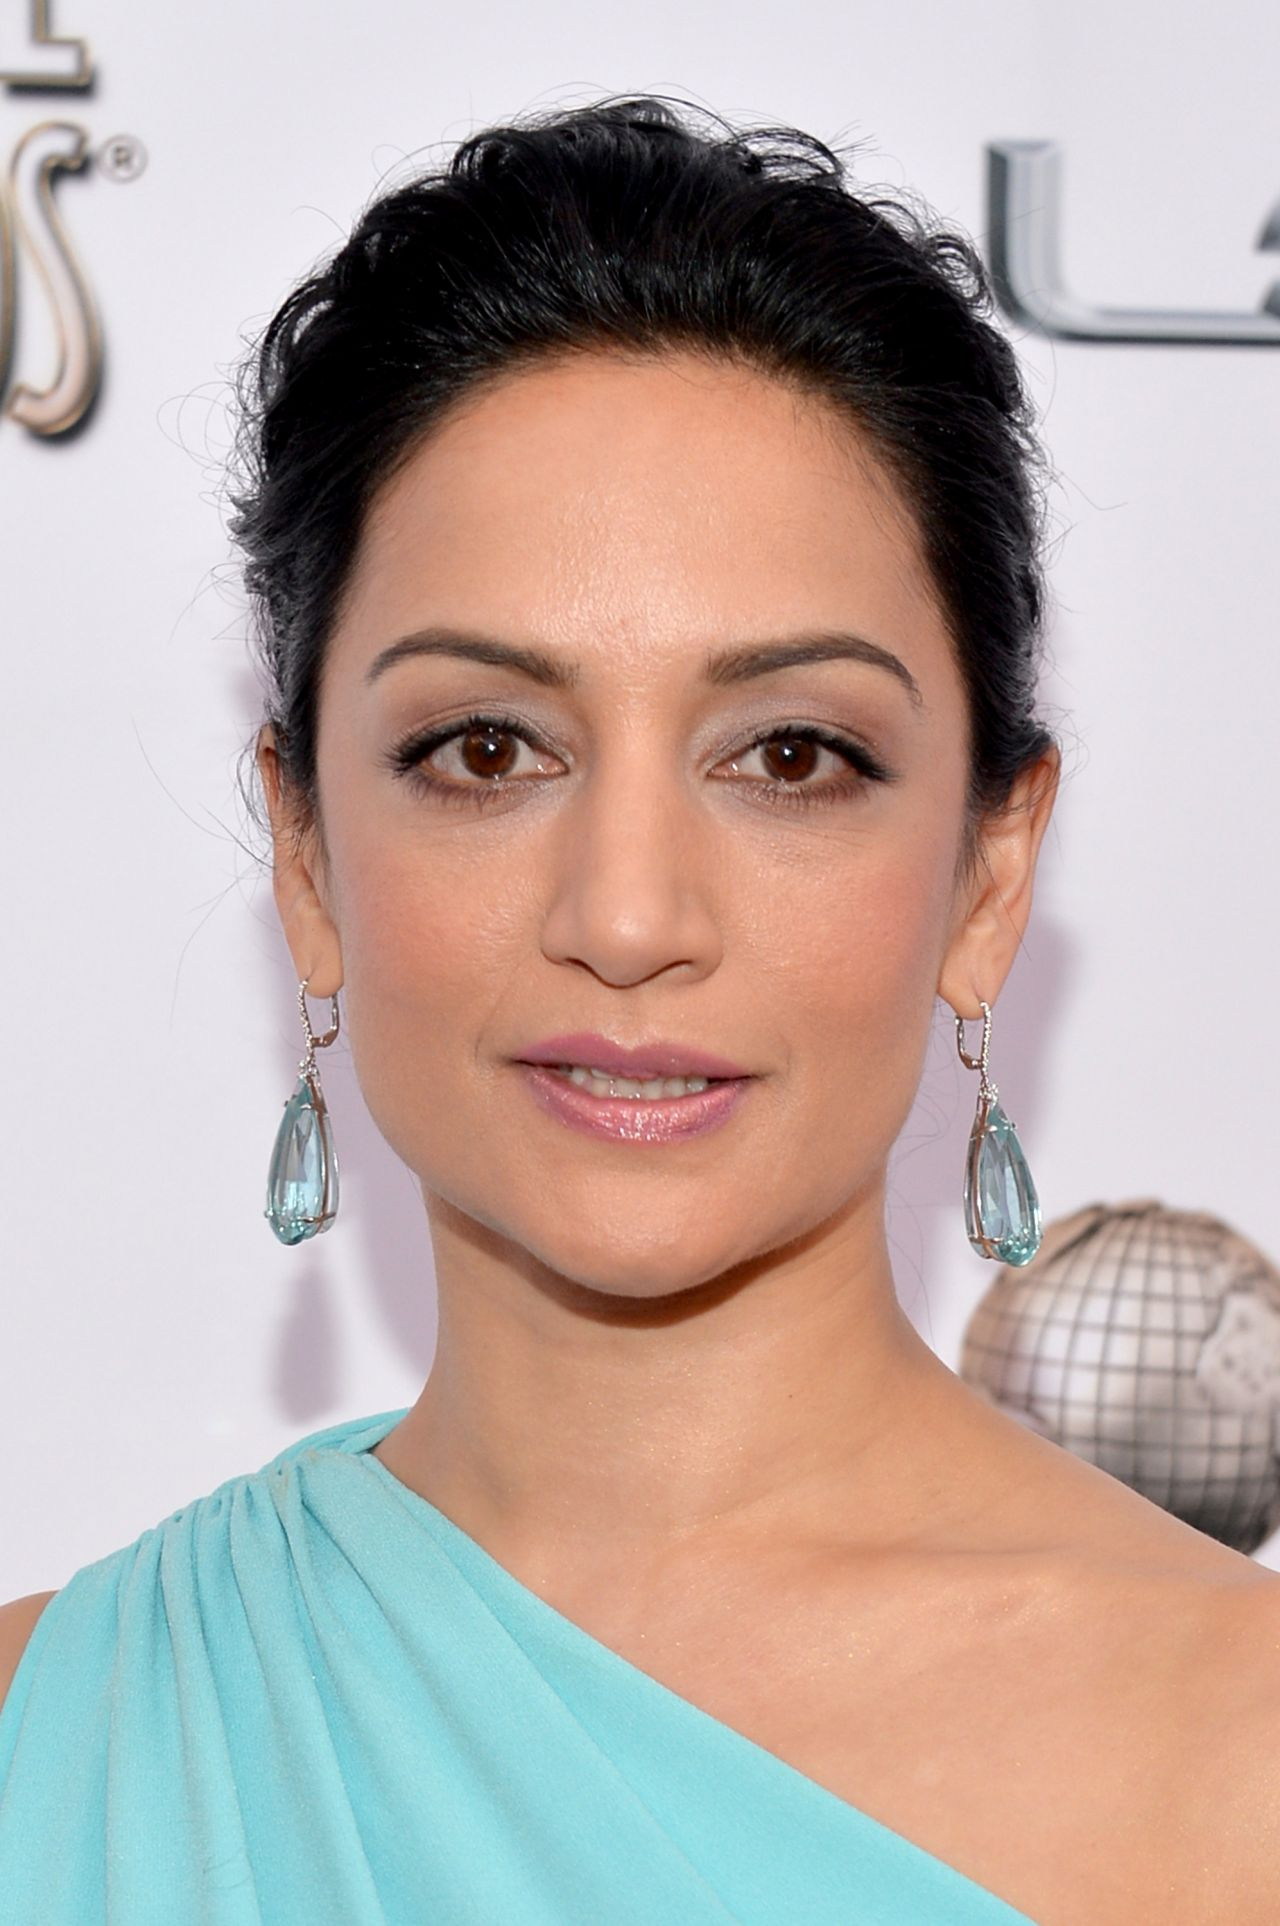 archie panjabi filmographyarchie panjabi kiss, archie panjabi bollywood, archie panjabi interview, archie panjabi photos, archie panjabi scene, archie panjabi blindspot, archie panjabi filmography, archie panjabi young, archie panjabi the good wife, archie panjabi accent, archie panjabi instagram, archie panjabi fansite, archie panjabi wikipédia, archie panjabi twitter, archie panjabi altezza